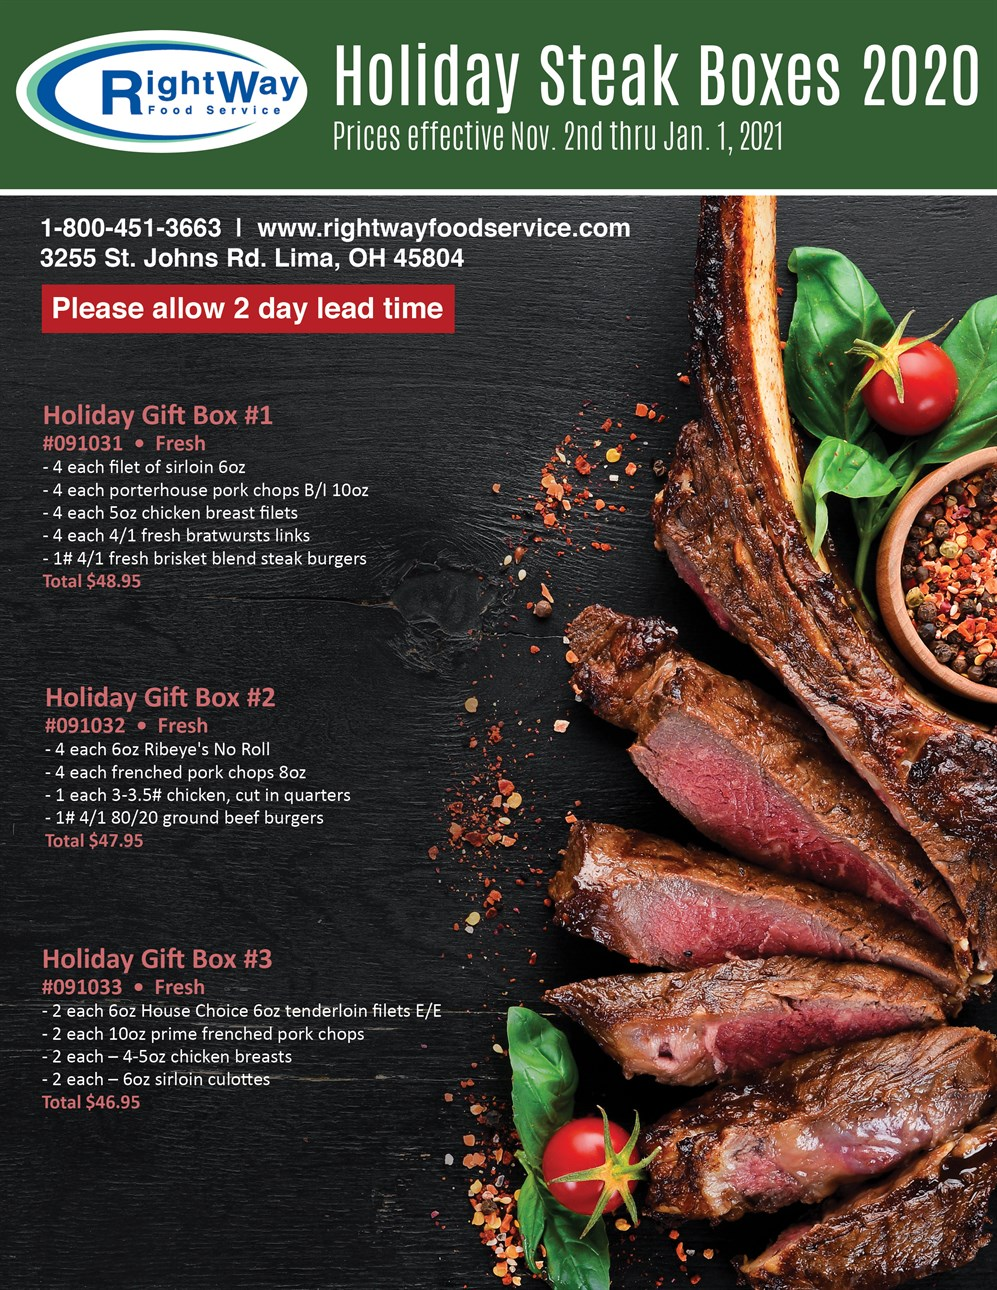 11-20 holiday steak boxes